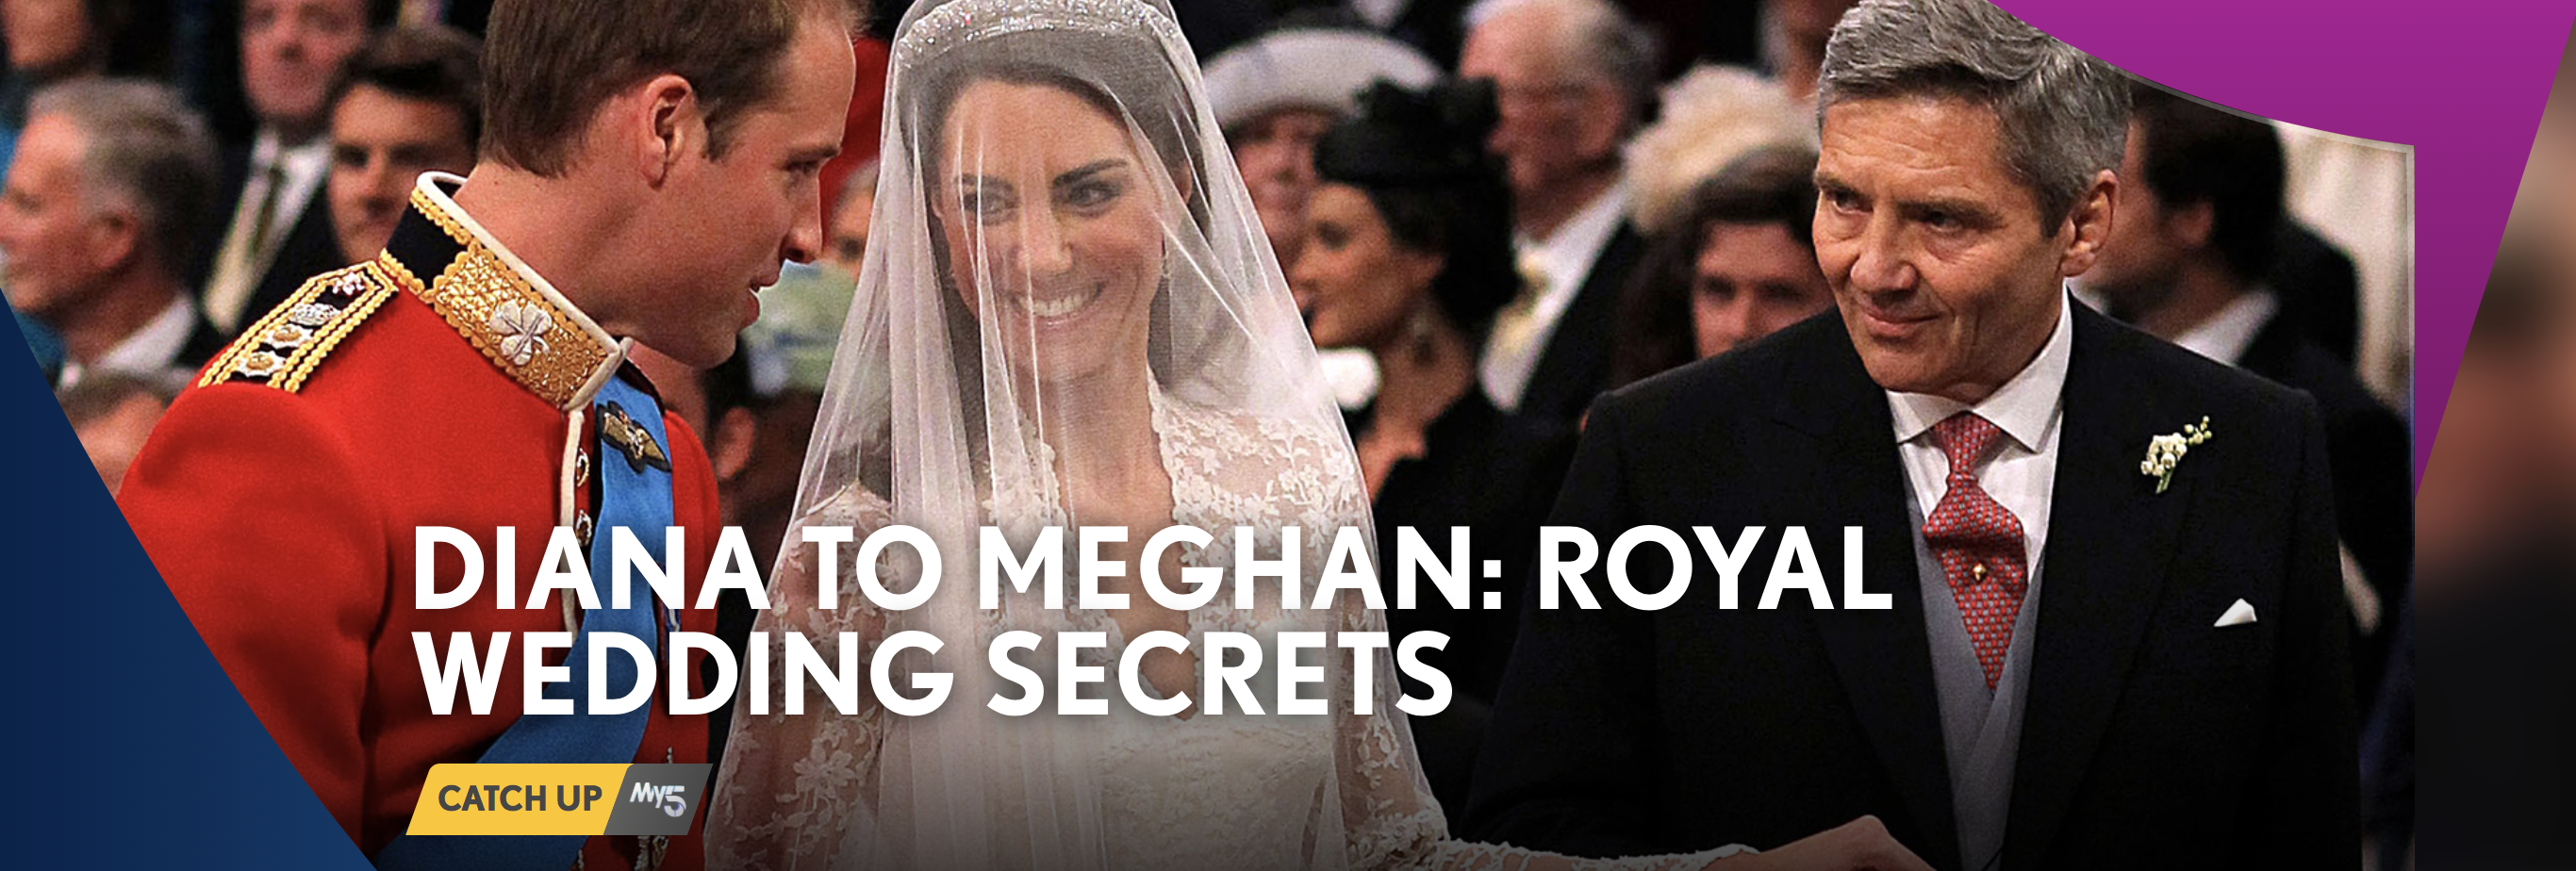 Royal Wedding Secrets.